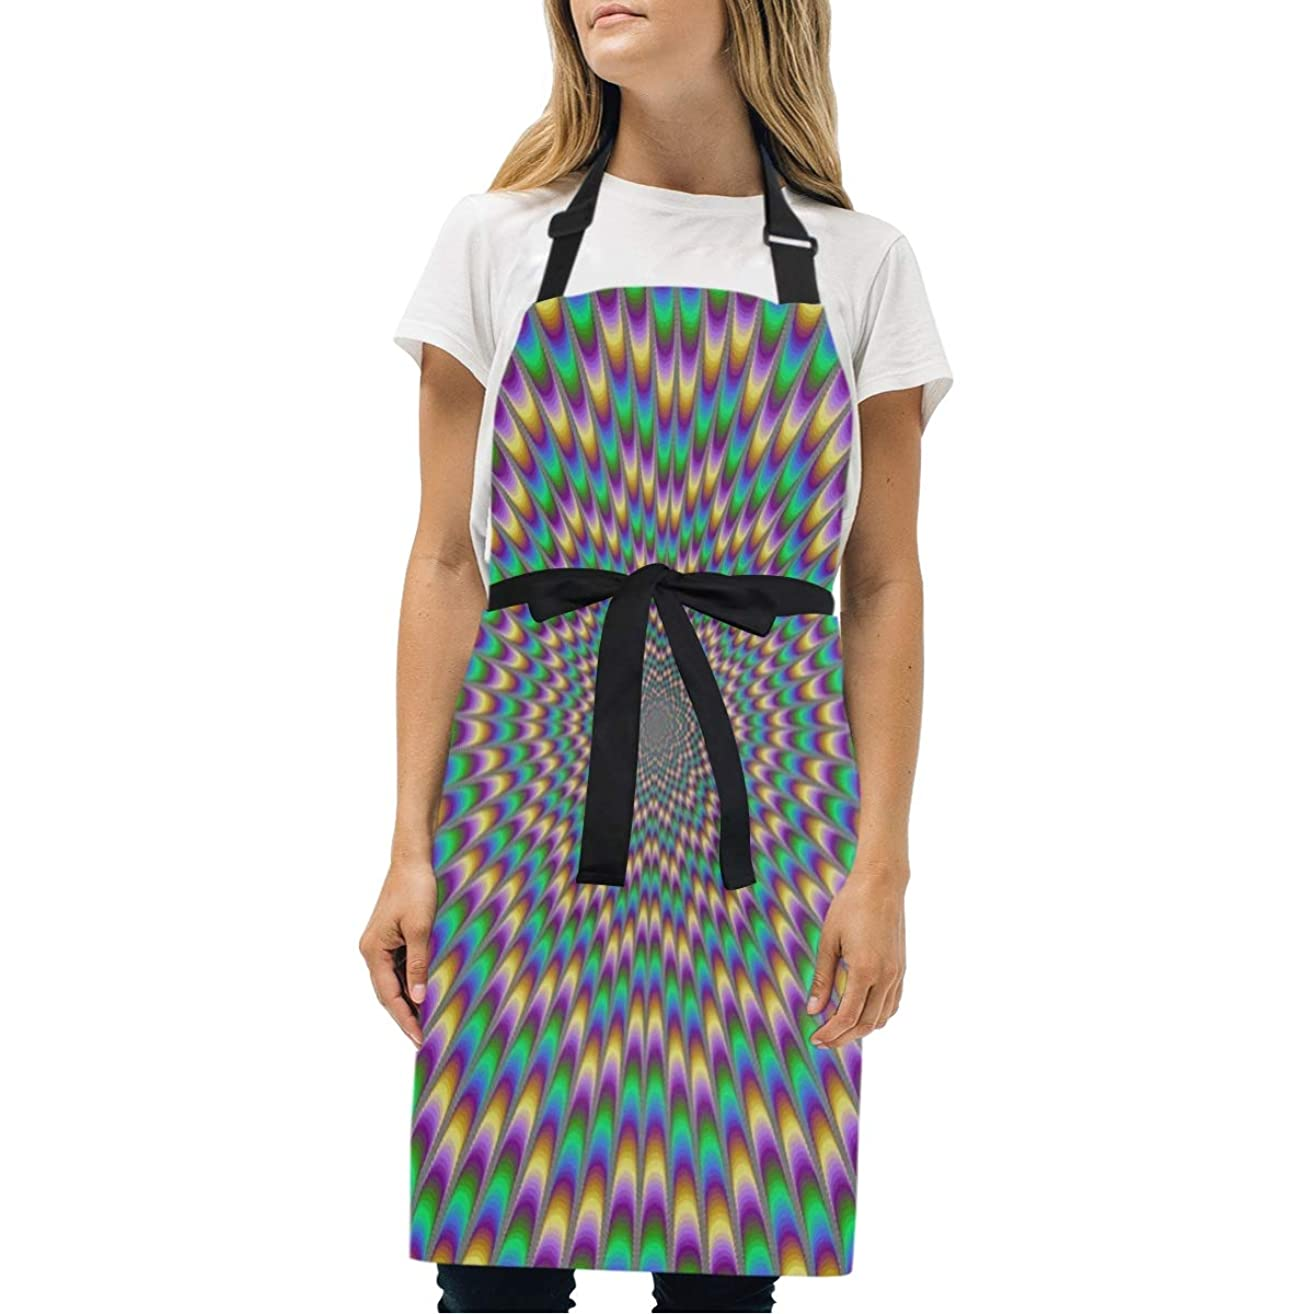 HJudge Womens Aprons Colorful Trippy Rainbow? Kitchen Bib Aprons with Pockets Adjustable Buckle on Neck